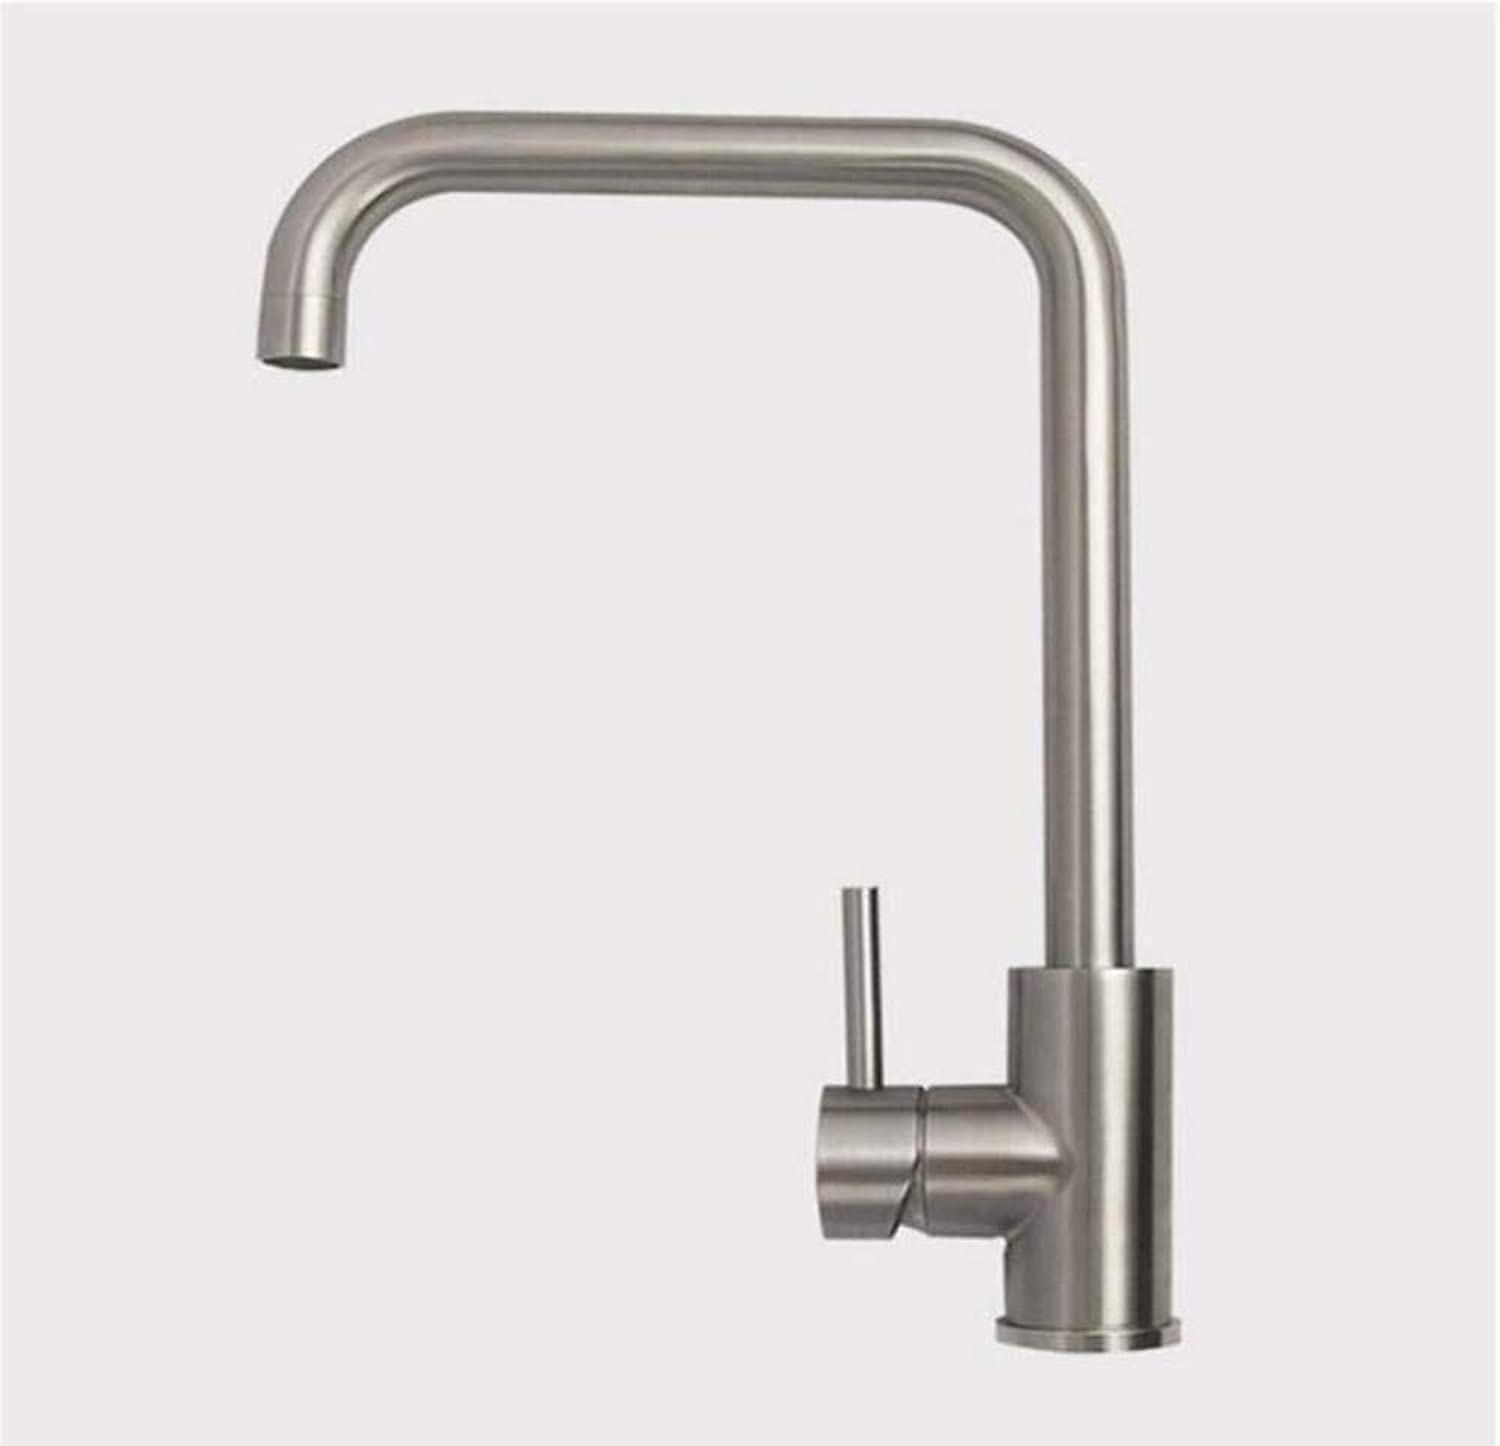 Brass Wall Faucet Chrome Brass Faucetfaucet Deck Mounted Water Tapware White and Original Brushed